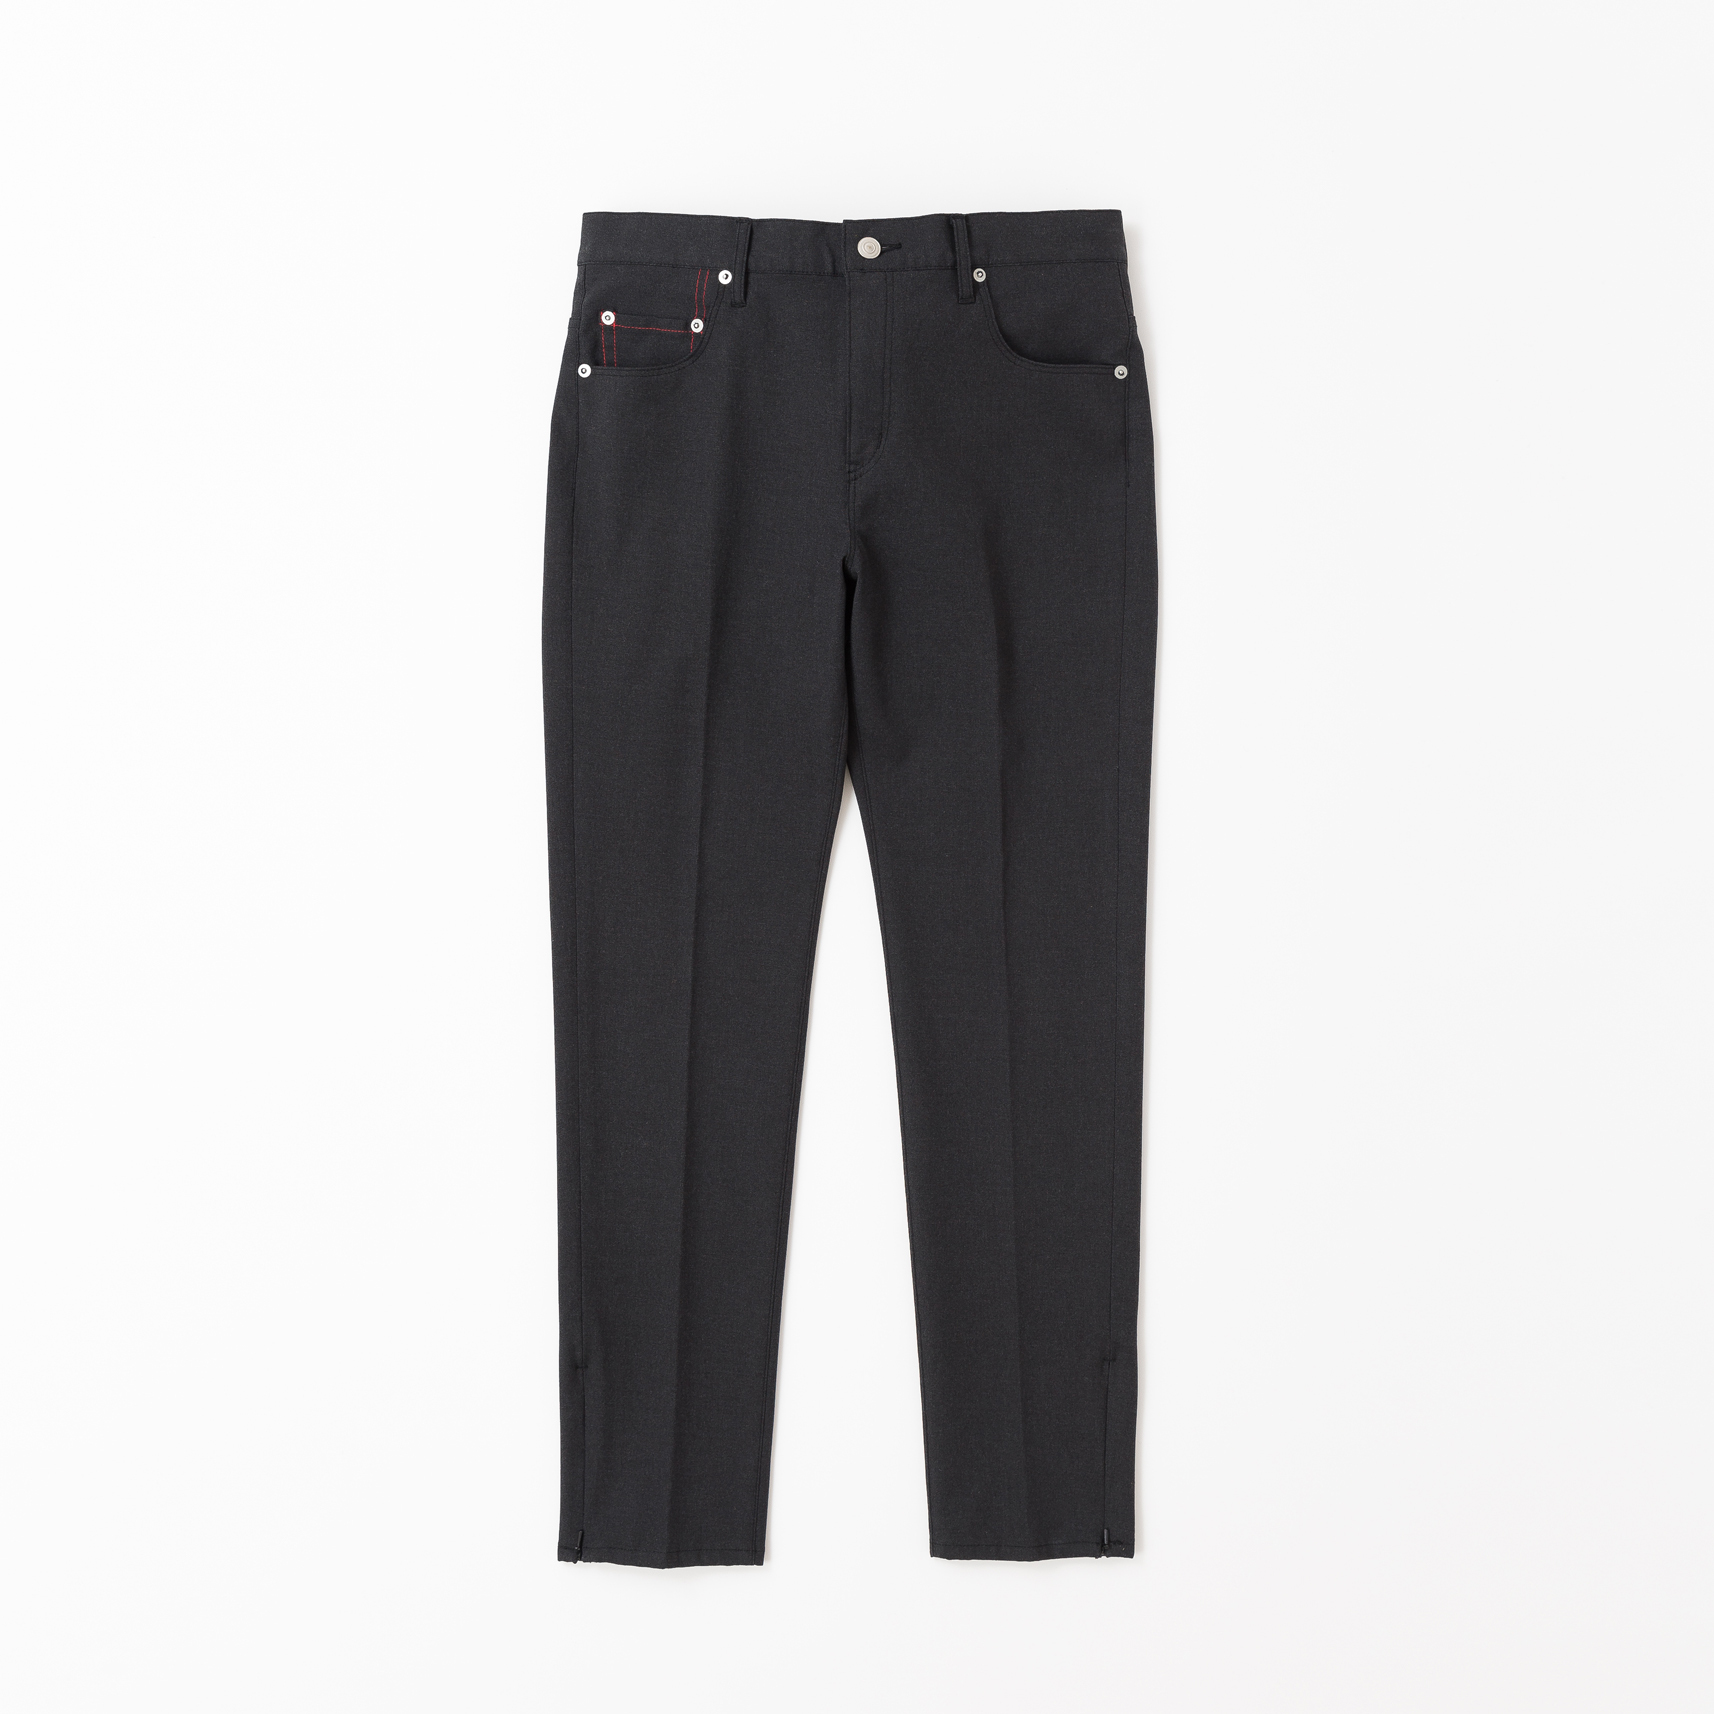 【VICTIM】ZIP SKINNY PANTS(BLACK)